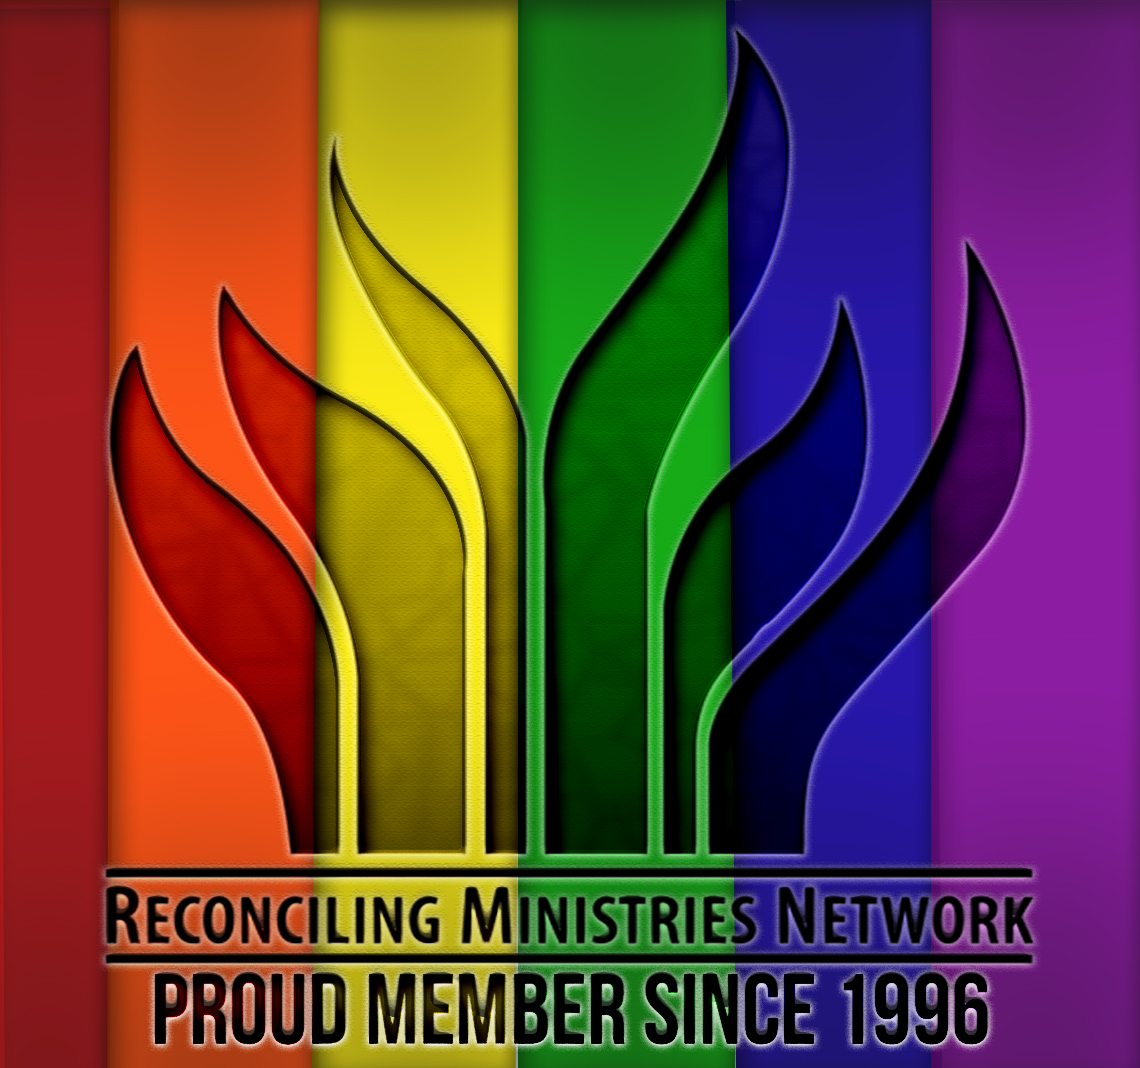 REconciling ministries network PROUD MEMBER SINCE 1996